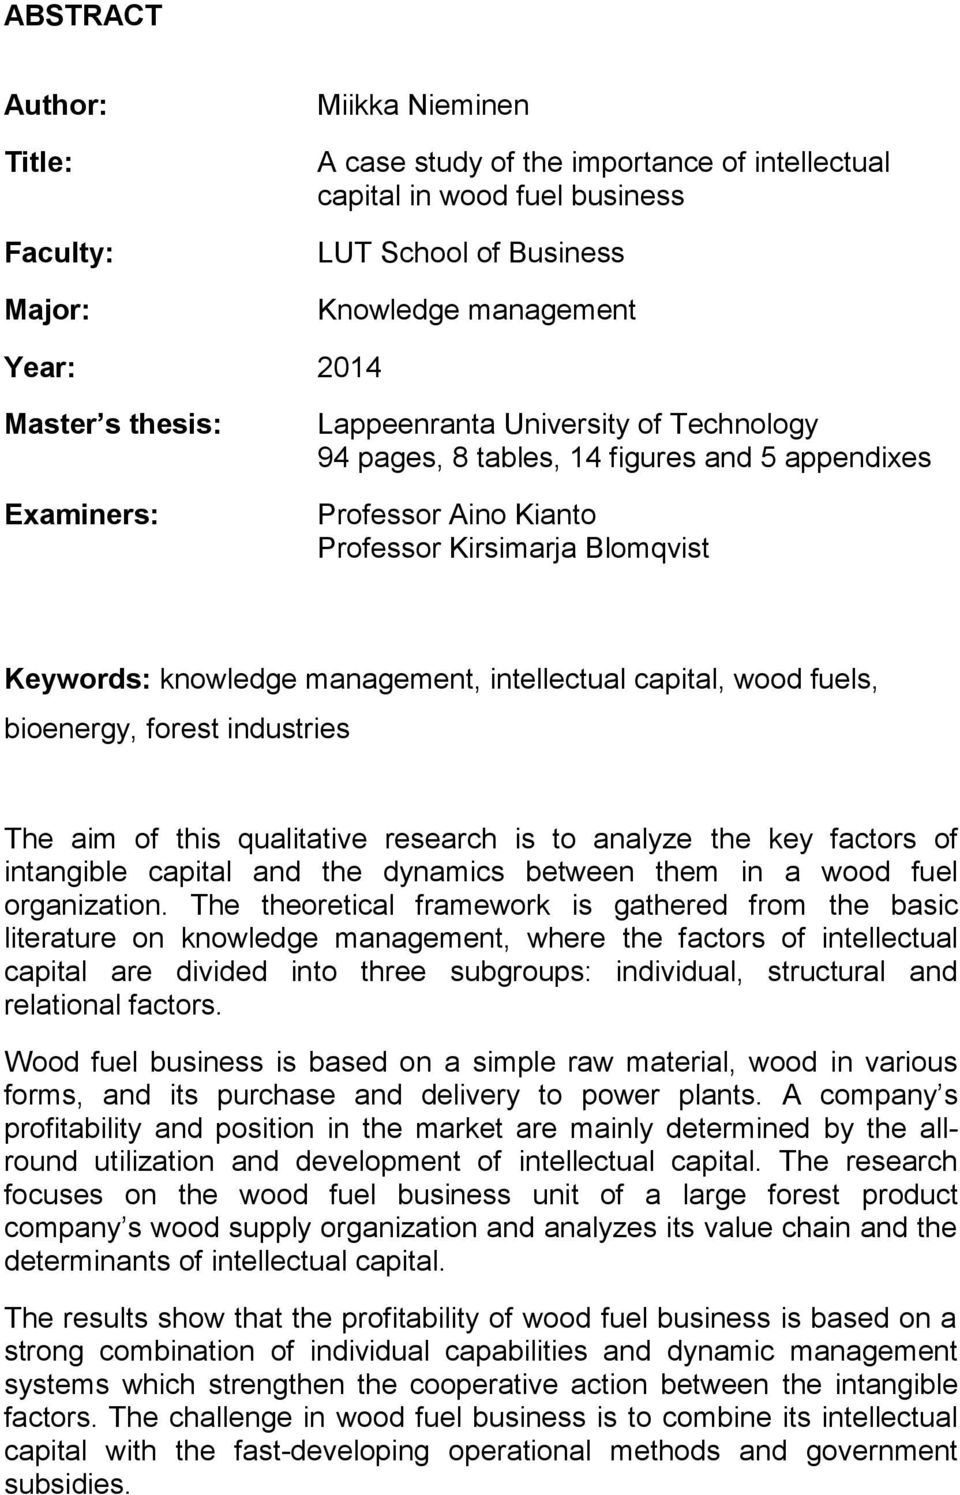 intellectual capital, wood fuels, bioenergy, forest industries The aim of this qualitative research is to analyze the key factors of intangible capital and the dynamics between them in a wood fuel